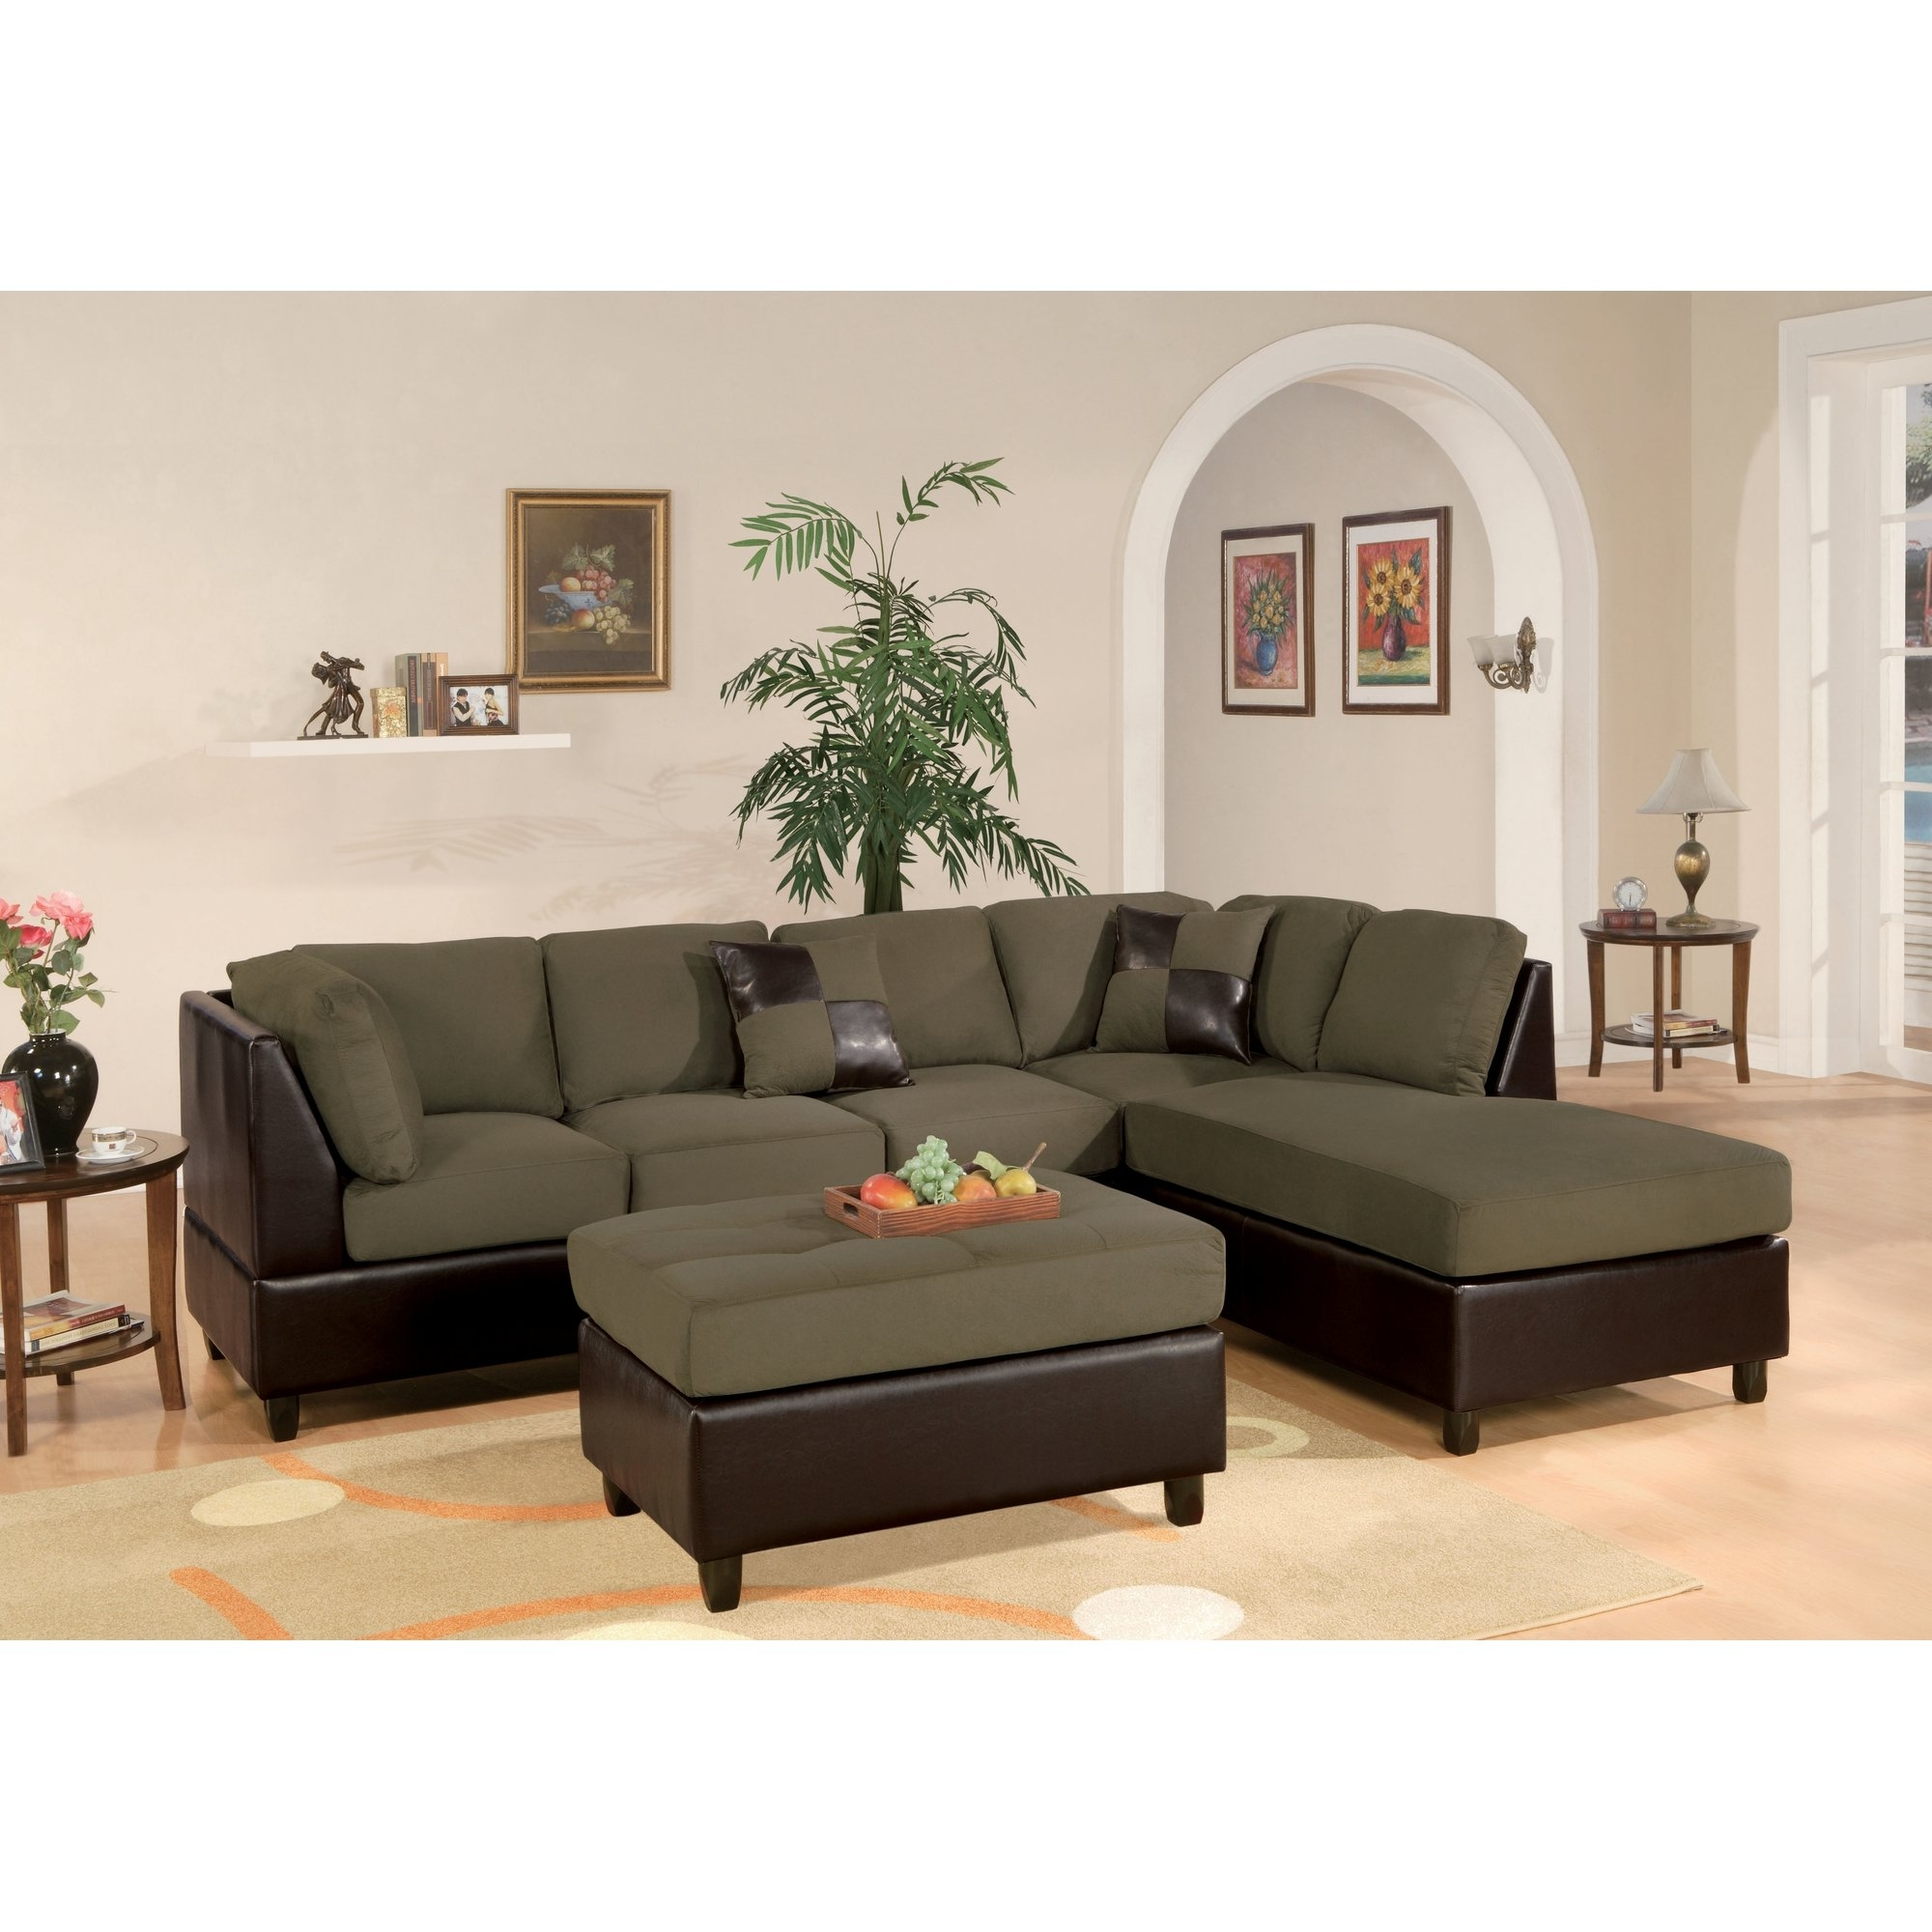 Most Popular 80X80 Sectional Sofas With Furniture : Best Sectional Couch 2015 Large Sectional Sofas Uk (View 15 of 20)